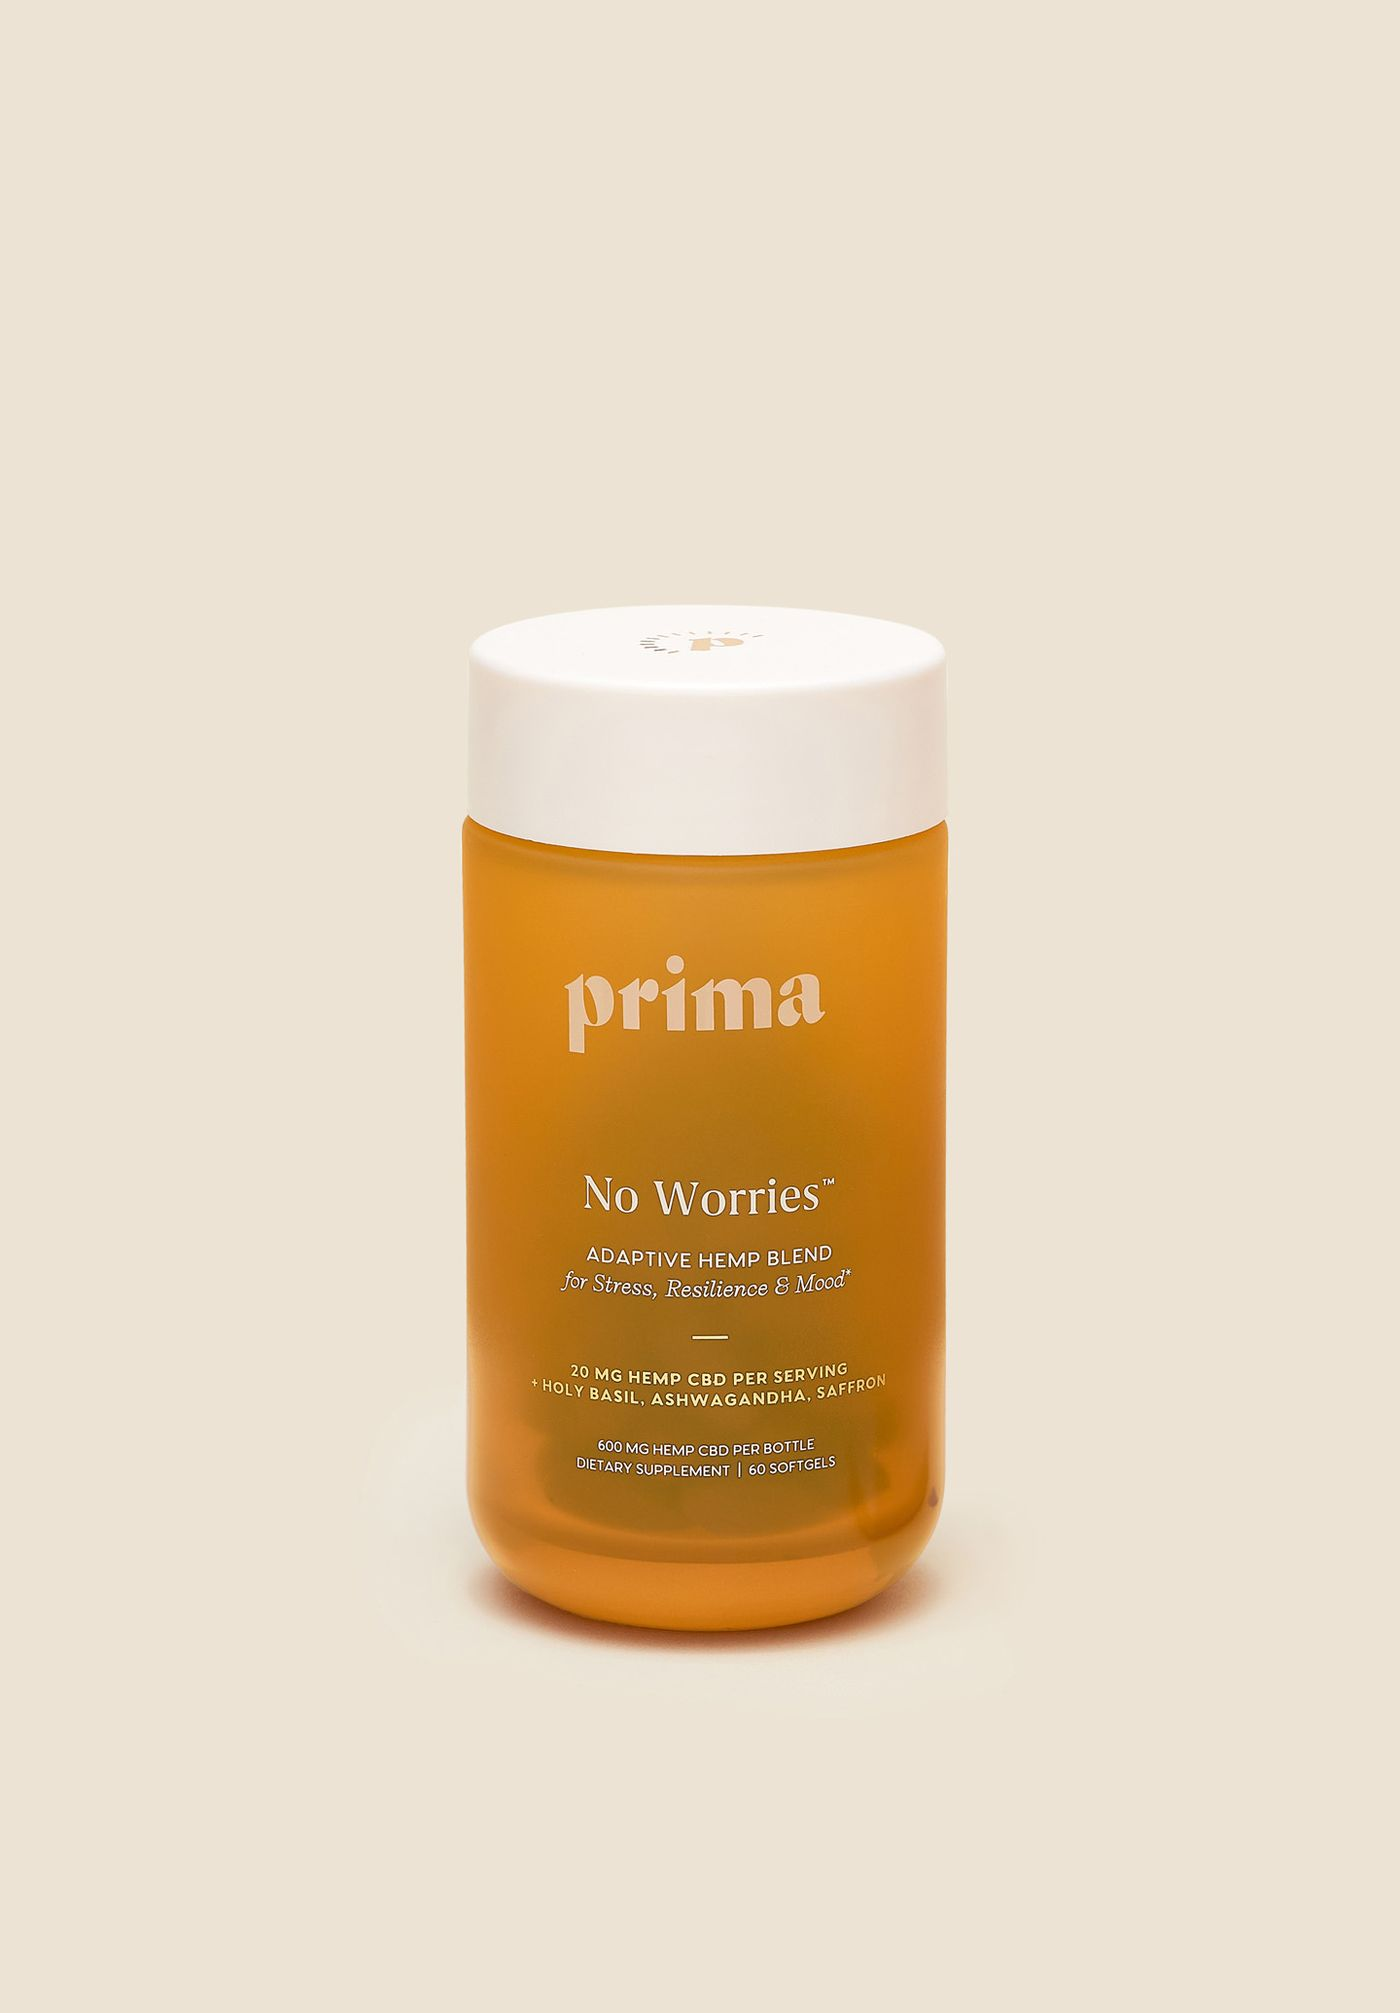 Prima No Worries™ 20mg CBD + Botanicals Capsules